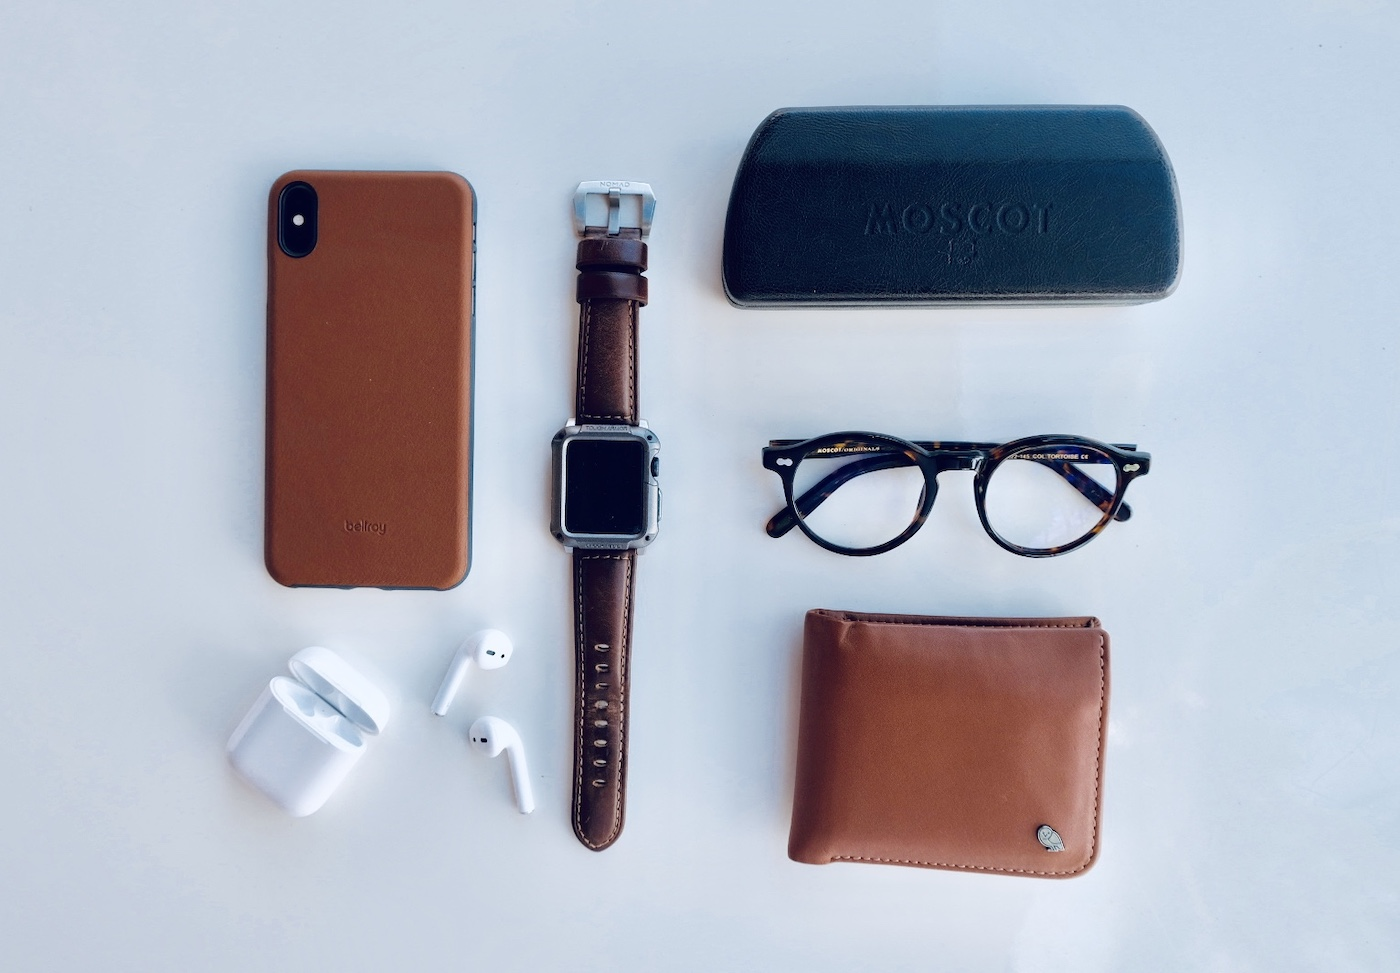 finest selection 1aa18 51428 Product Review: Bellroy iPhone XS Max Case (Caramel Color) - Out of ...